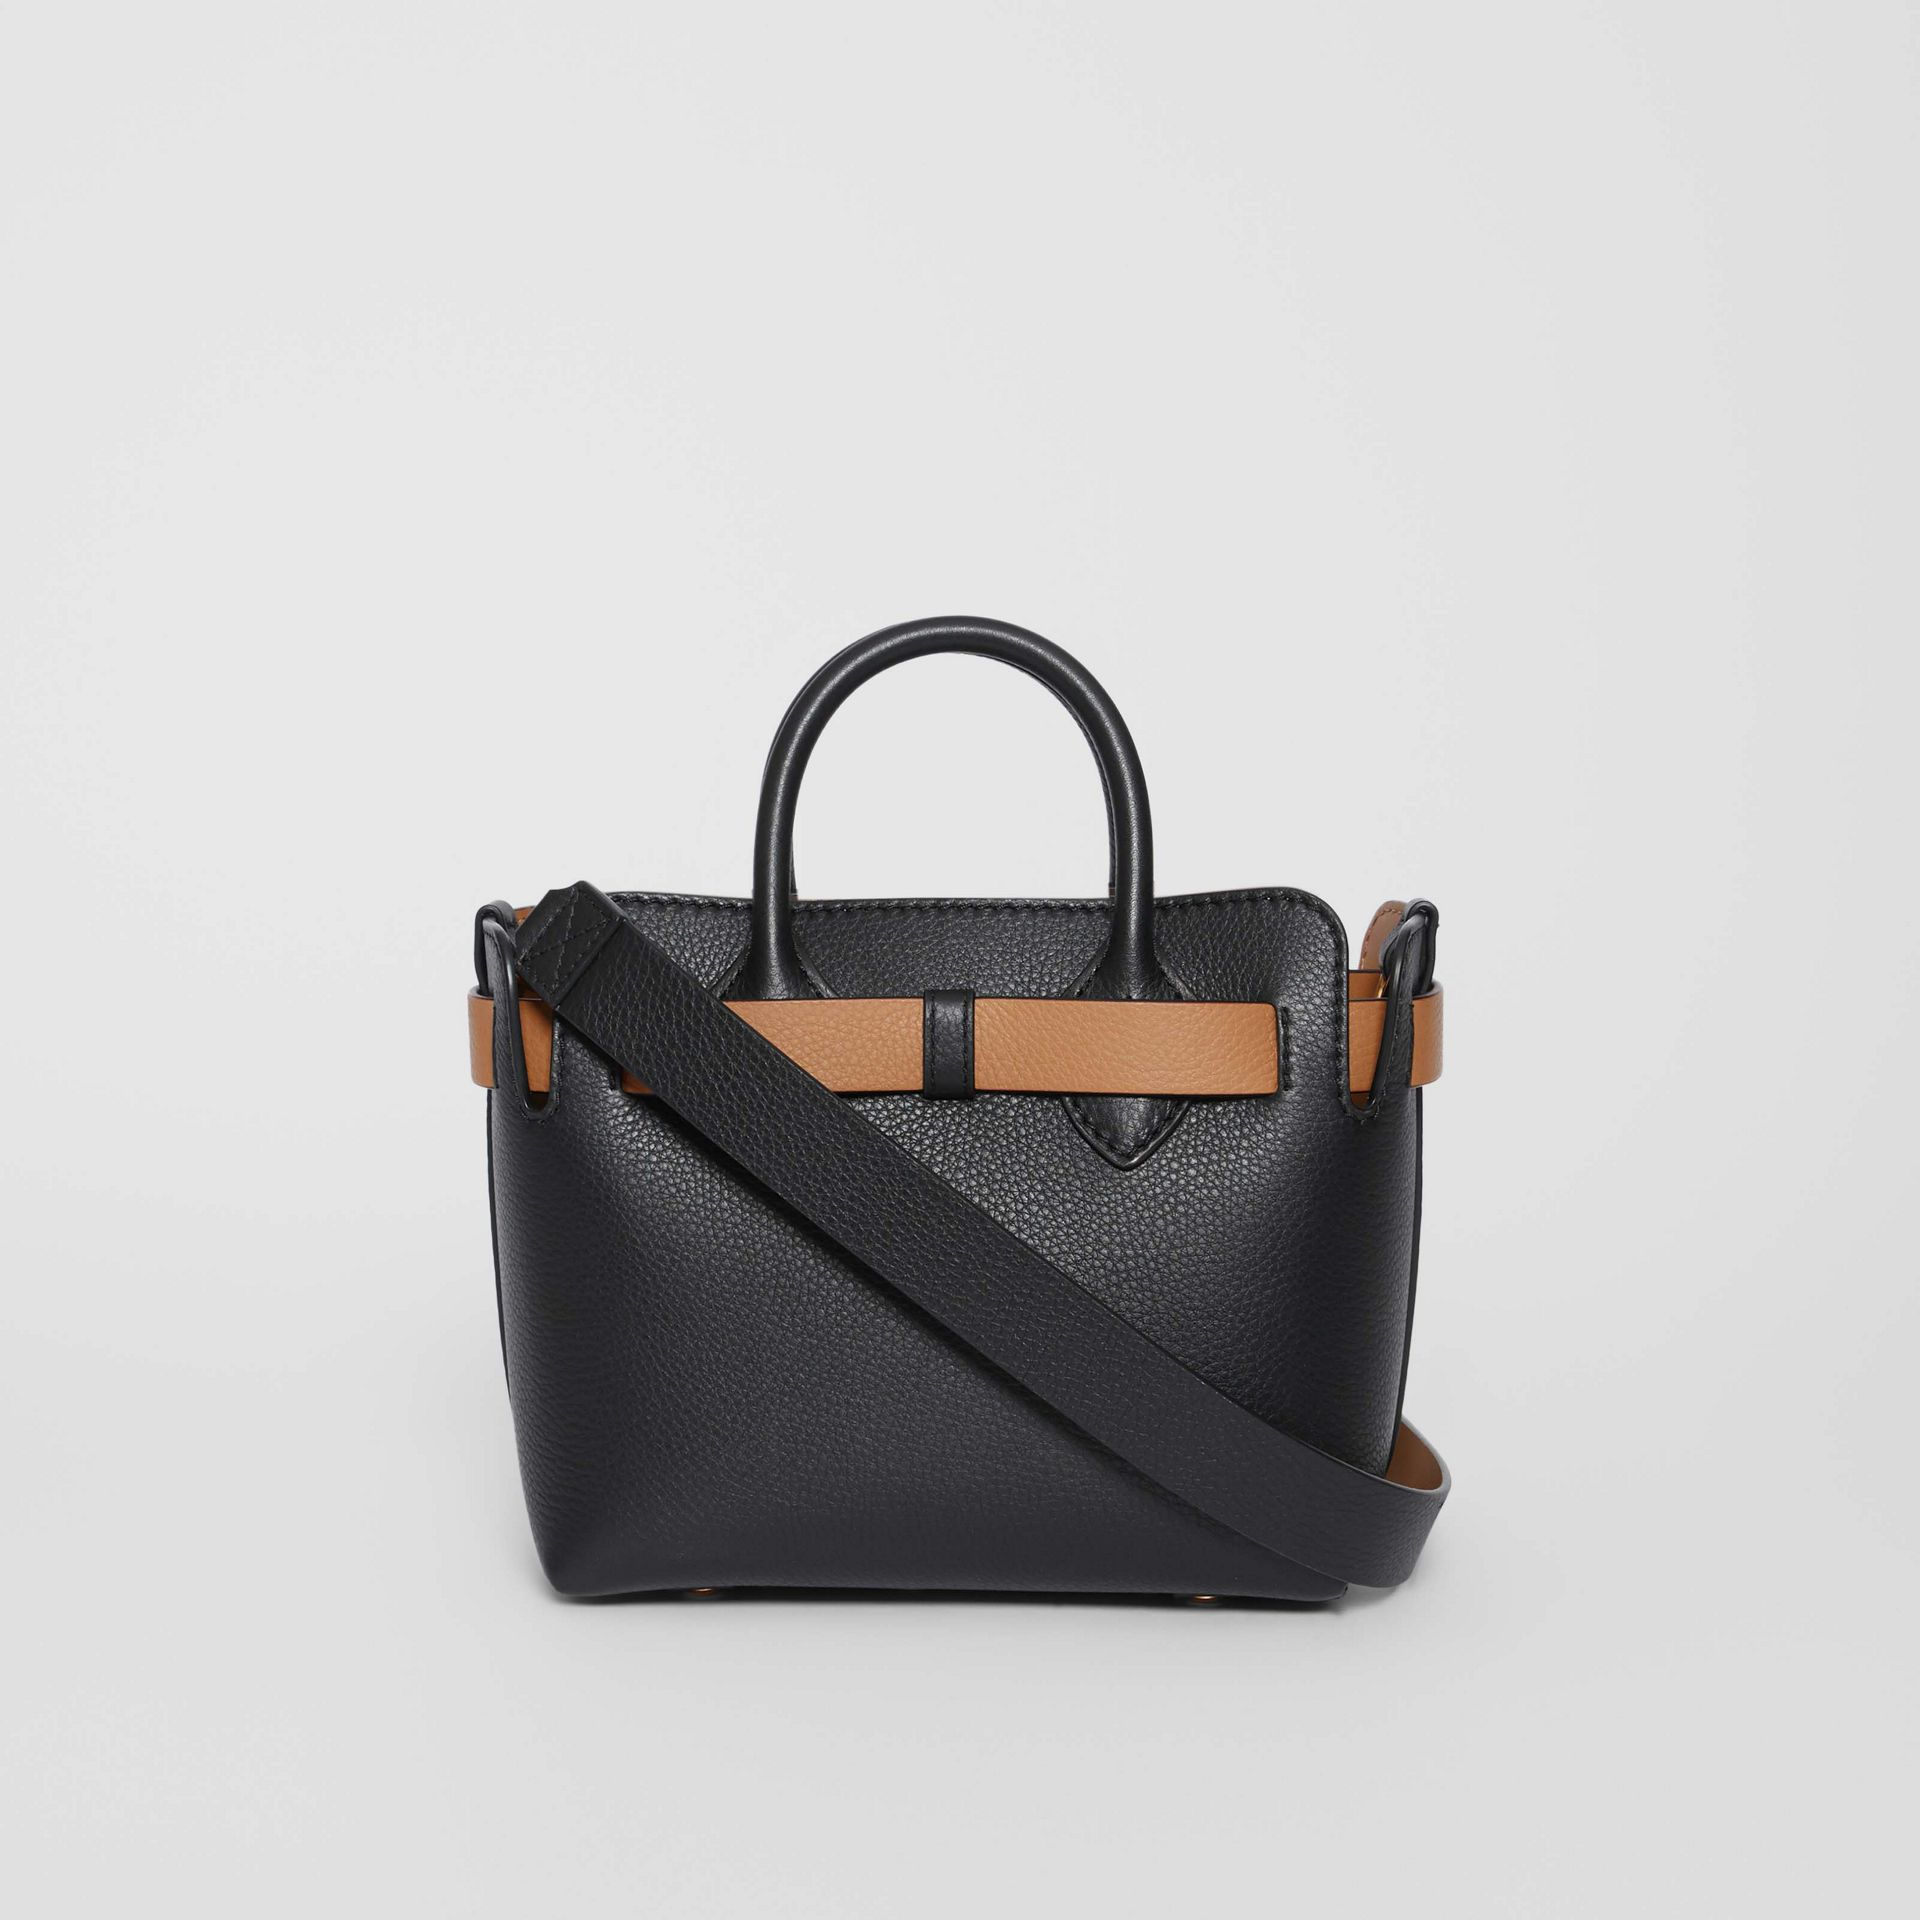 Borsa The Belt mini in pelle con tre borchie (Nero) - Donna | Burberry - immagine della galleria 7